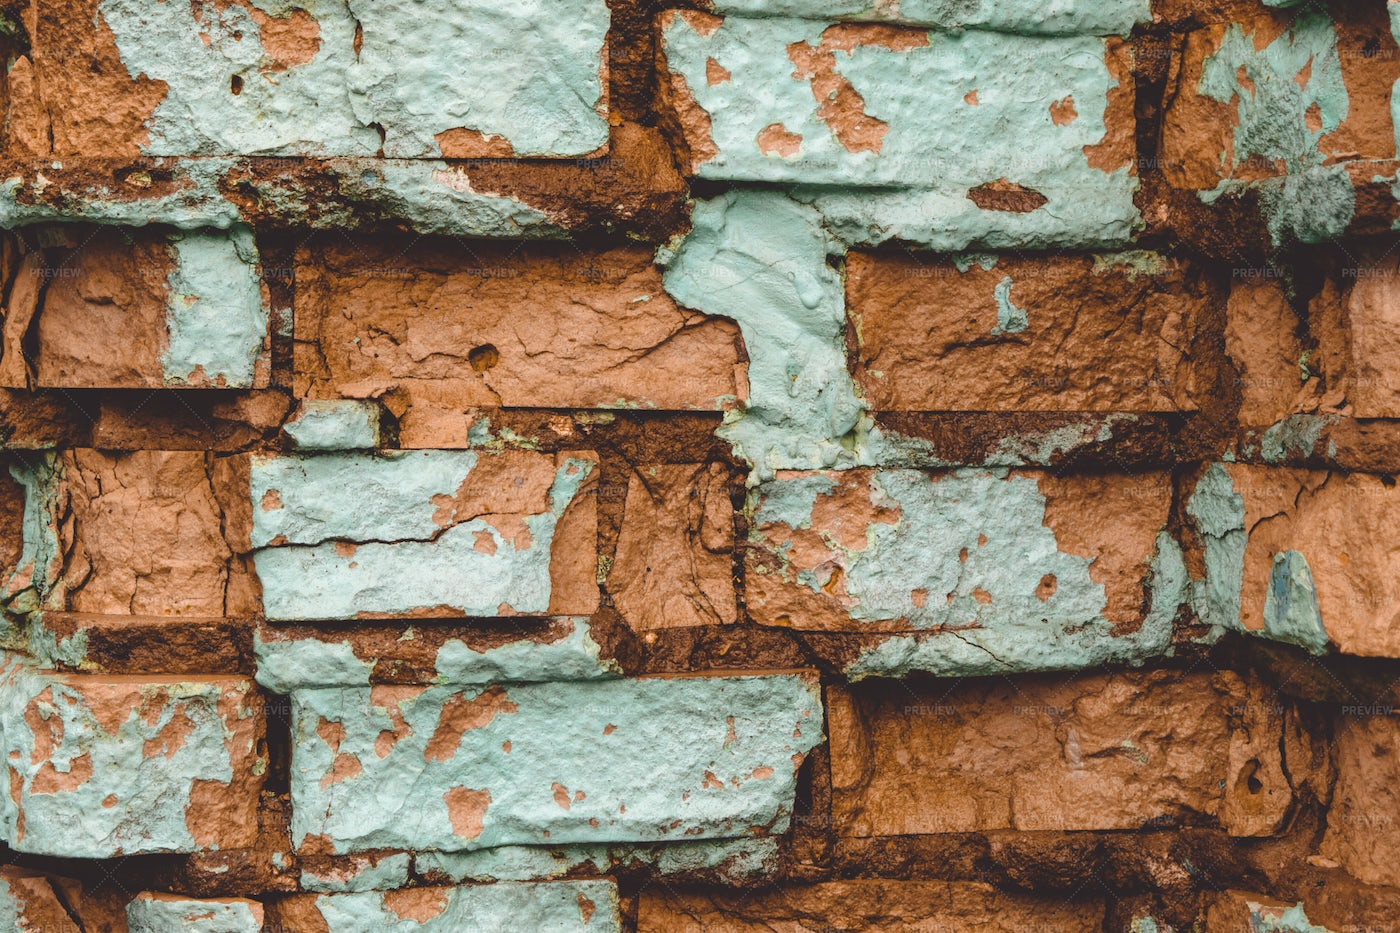 Brick Wall Stained With Cement: Stock Photos